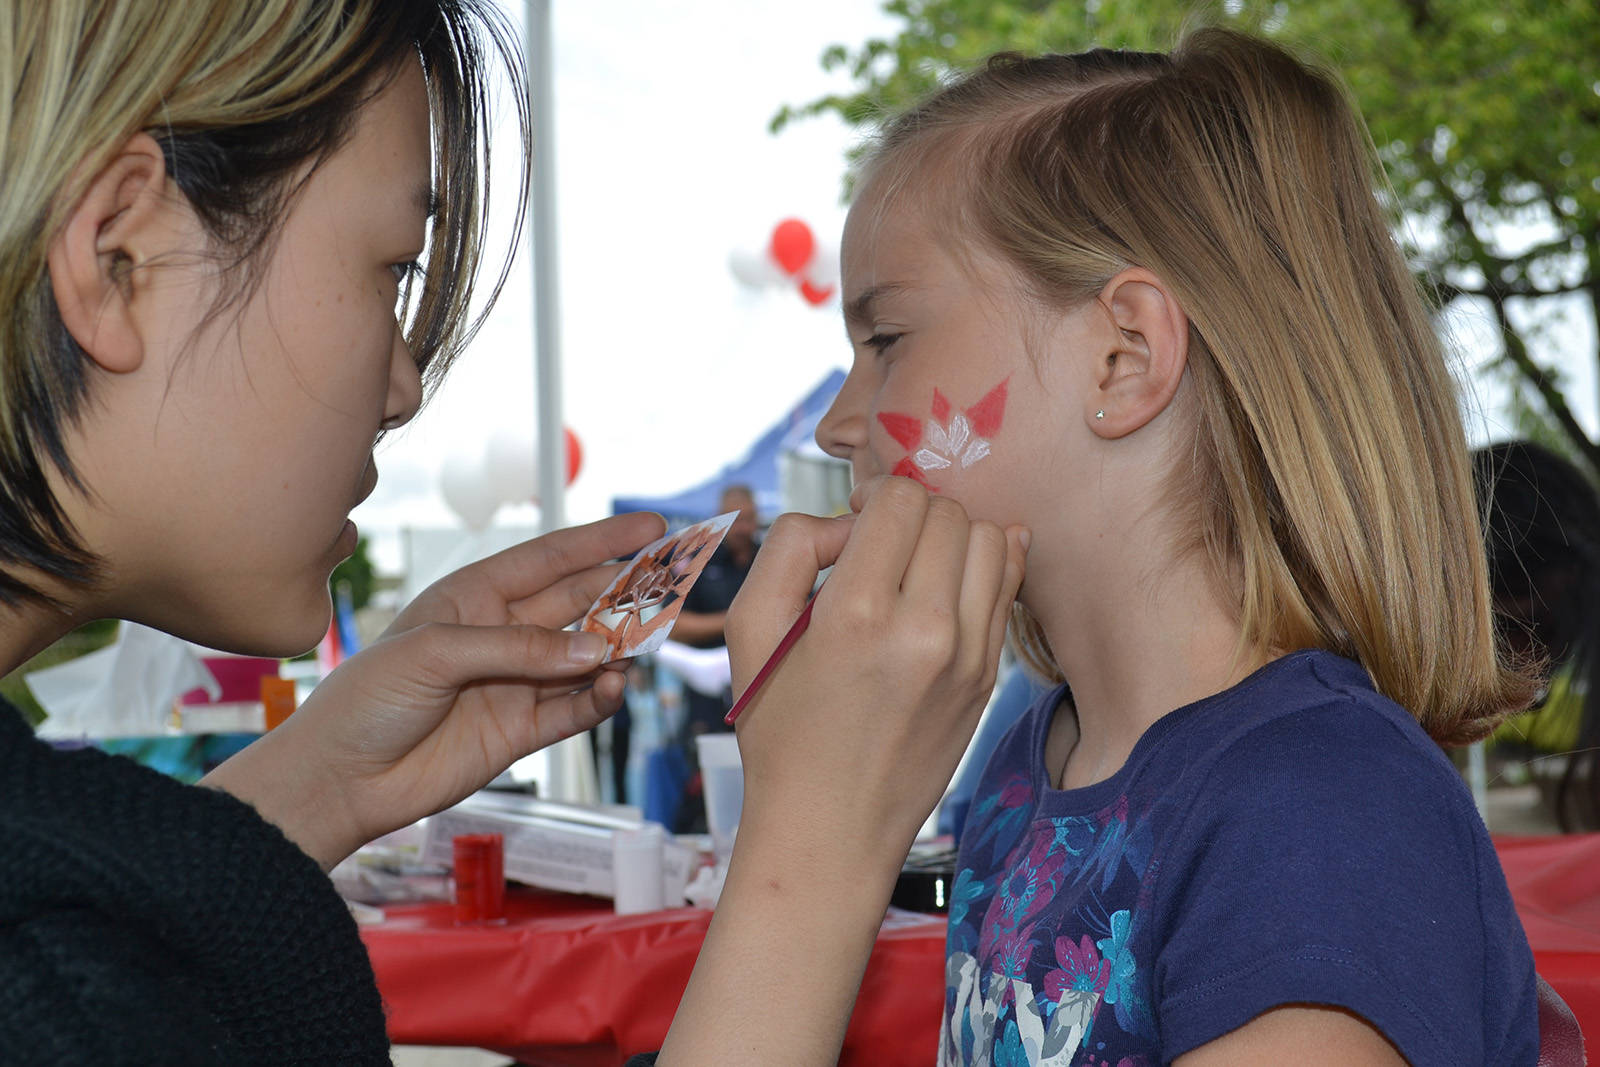 Discover lots of family-friendly fun on the Langley City calendar through July and August.